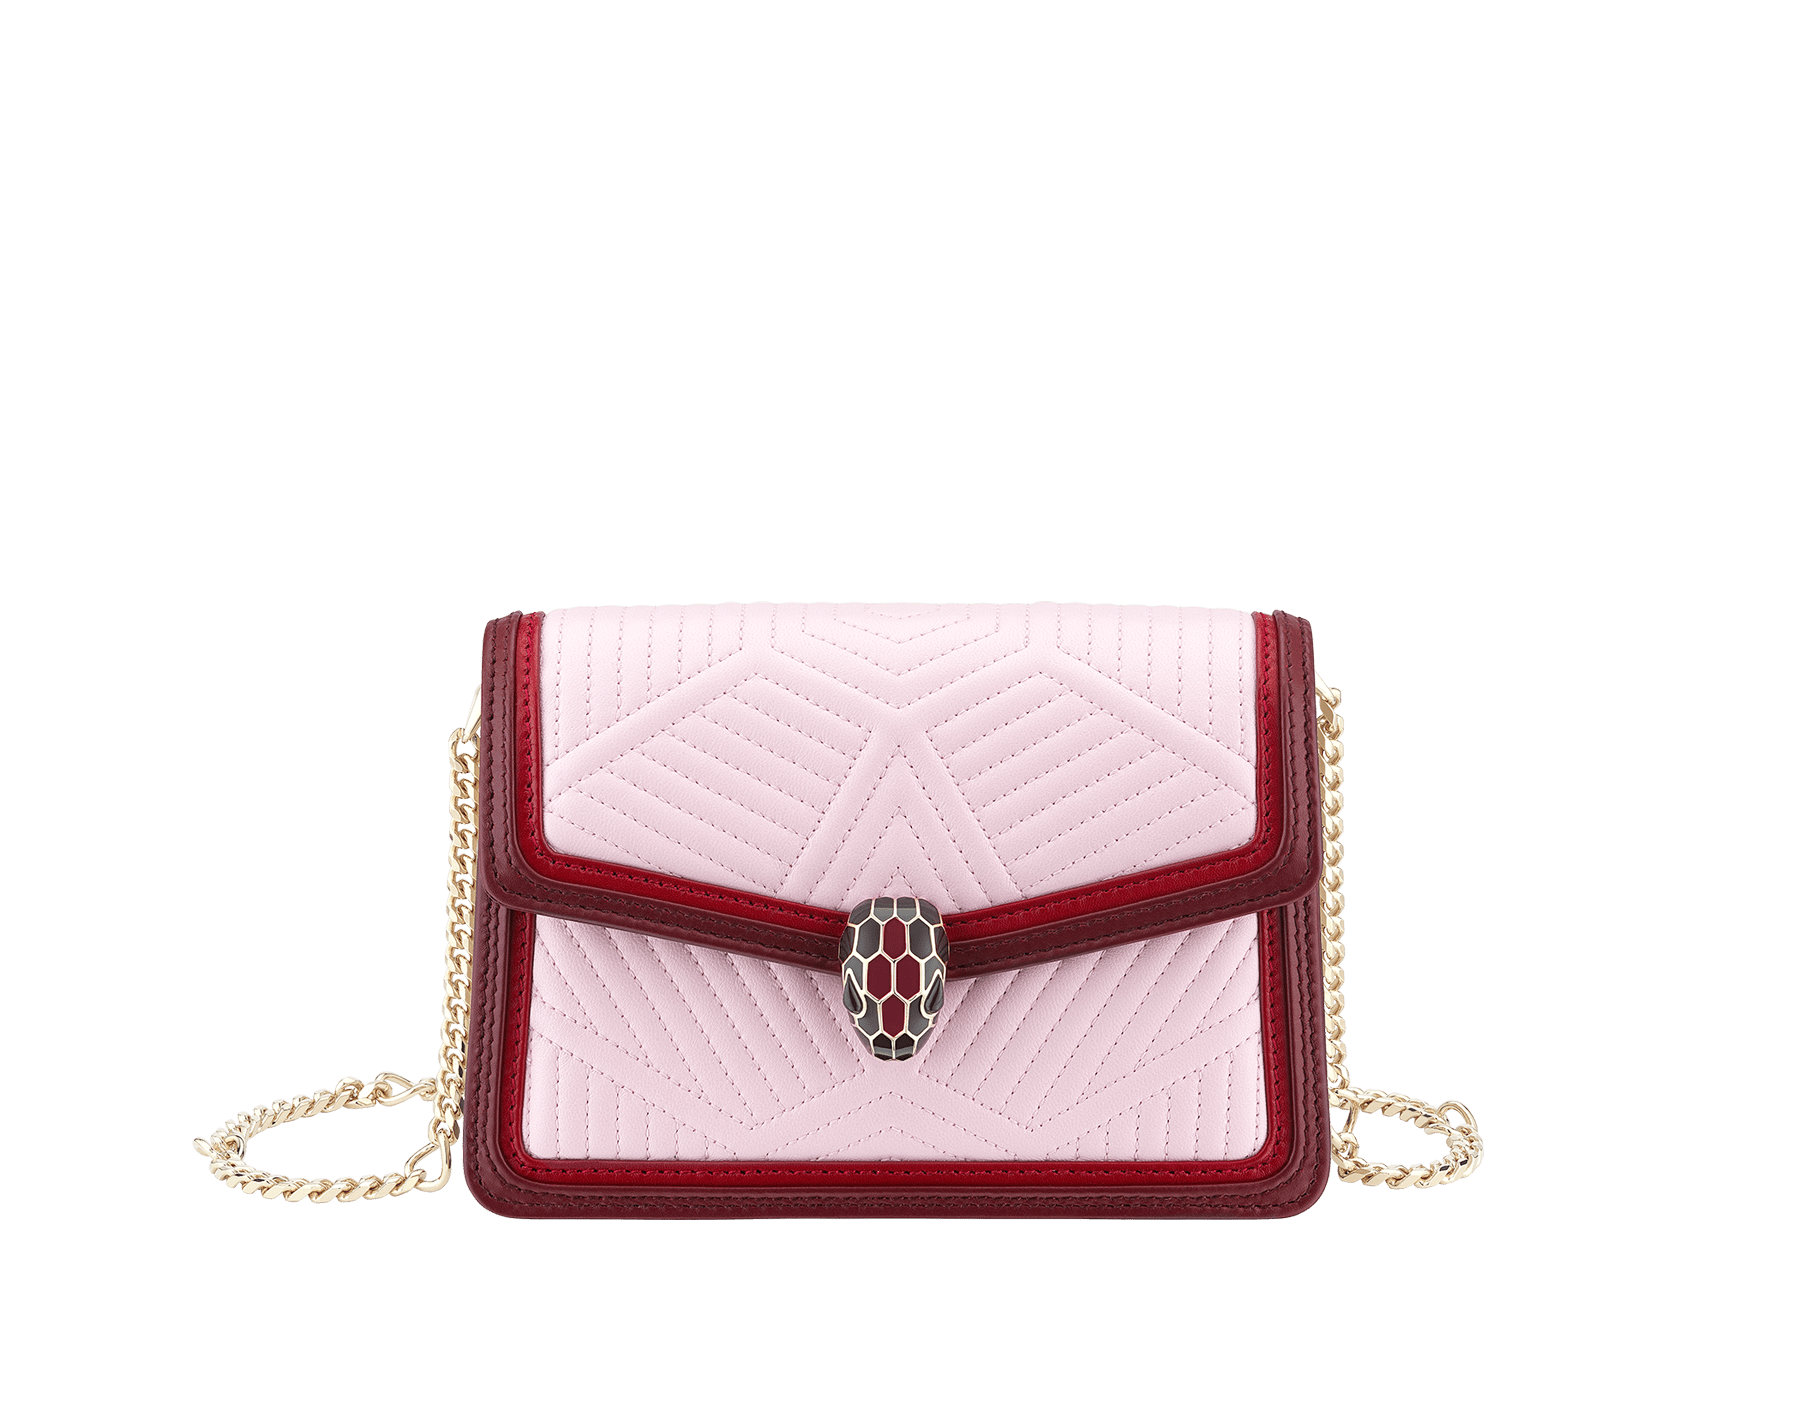 """""""Serpenti Diamond Blast"""" crossbody micro bag in white agate quilted nappa leather body and deep jade and black calf leather frames. Iconic snakehead closure in light gold plated brass enriched with deep jade and black enamel and black onyx eyes. 987-FQD image 1"""